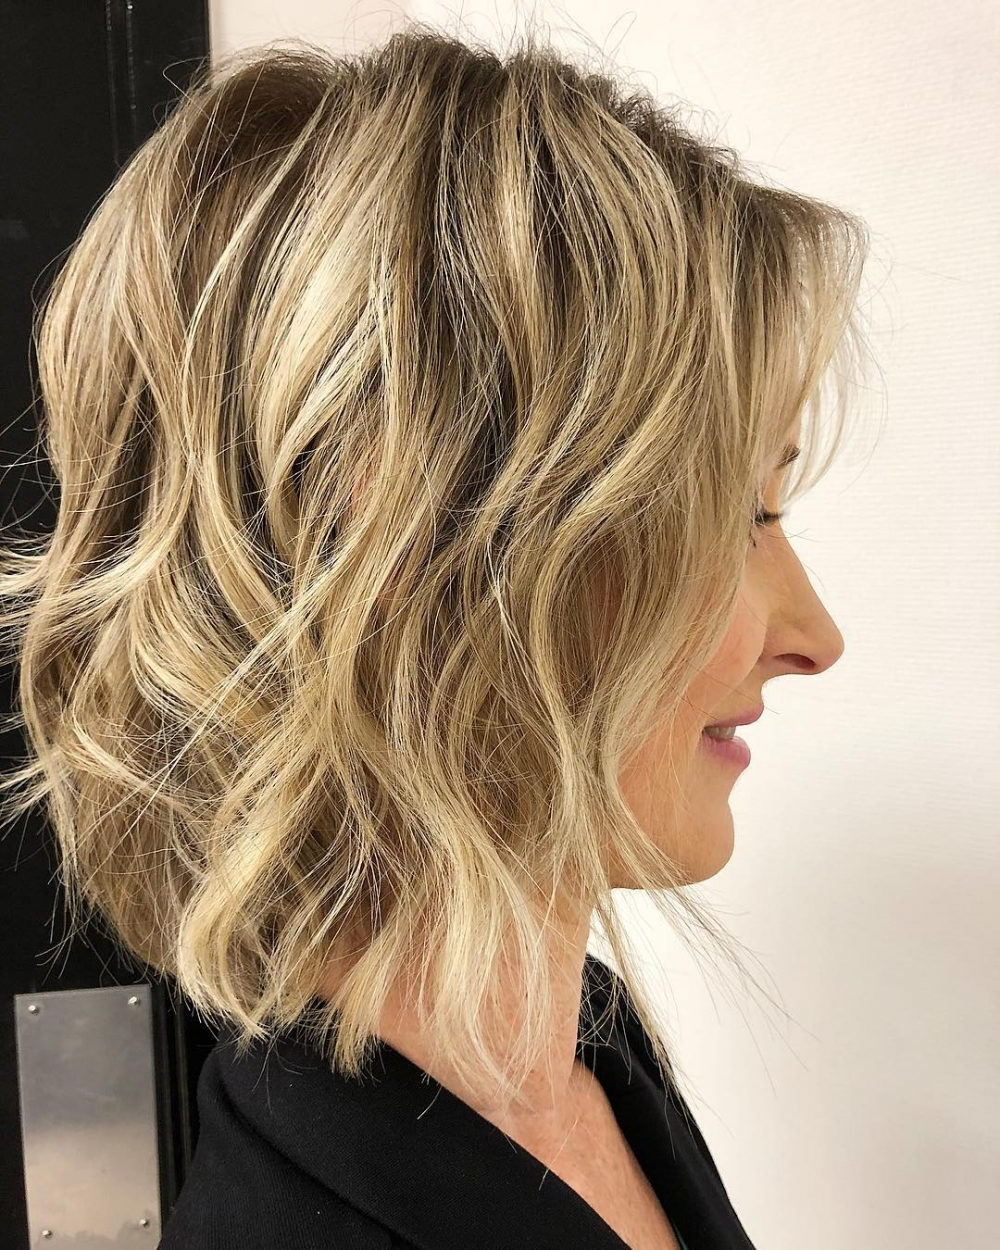 43 Perfect Short Hairstyles For Fine Hair In 2018 Regarding Ash Blonde Bob Hairstyles With Feathered Layers (View 7 of 20)